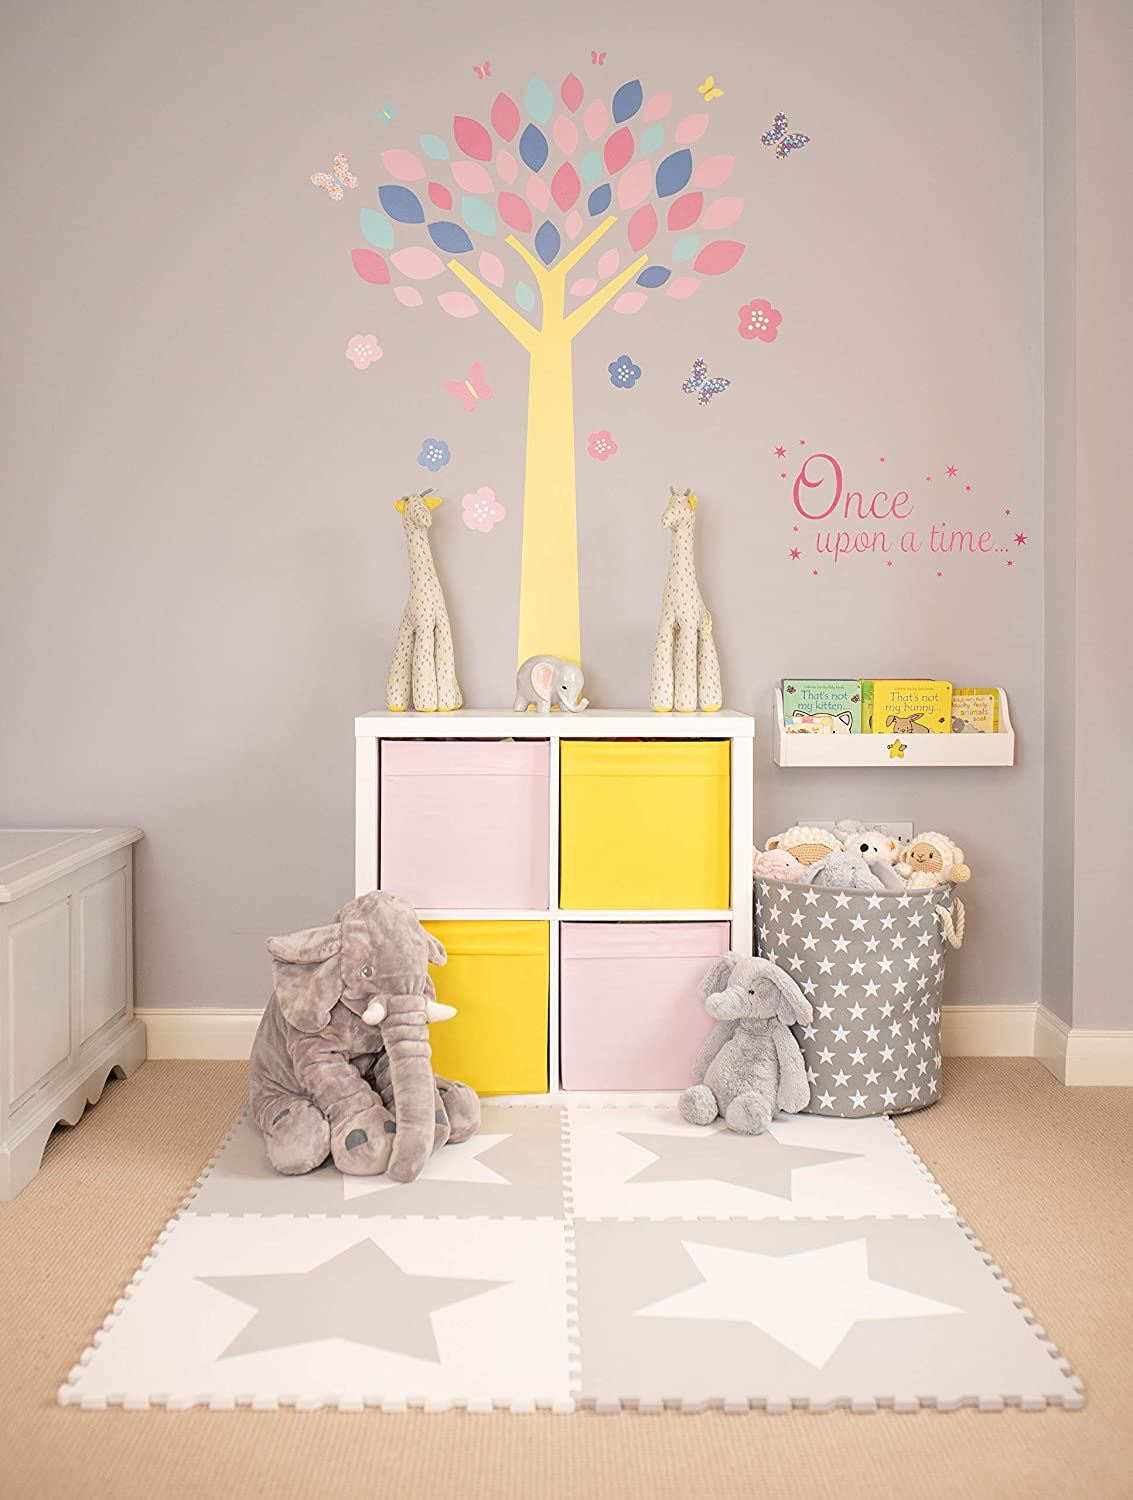 4 Large Interlocking Foam Baby Play Mat Star Tiles - Play Mats. Each Tile 60 x 60cms. Total 1.2m2. For the Love of Leisure